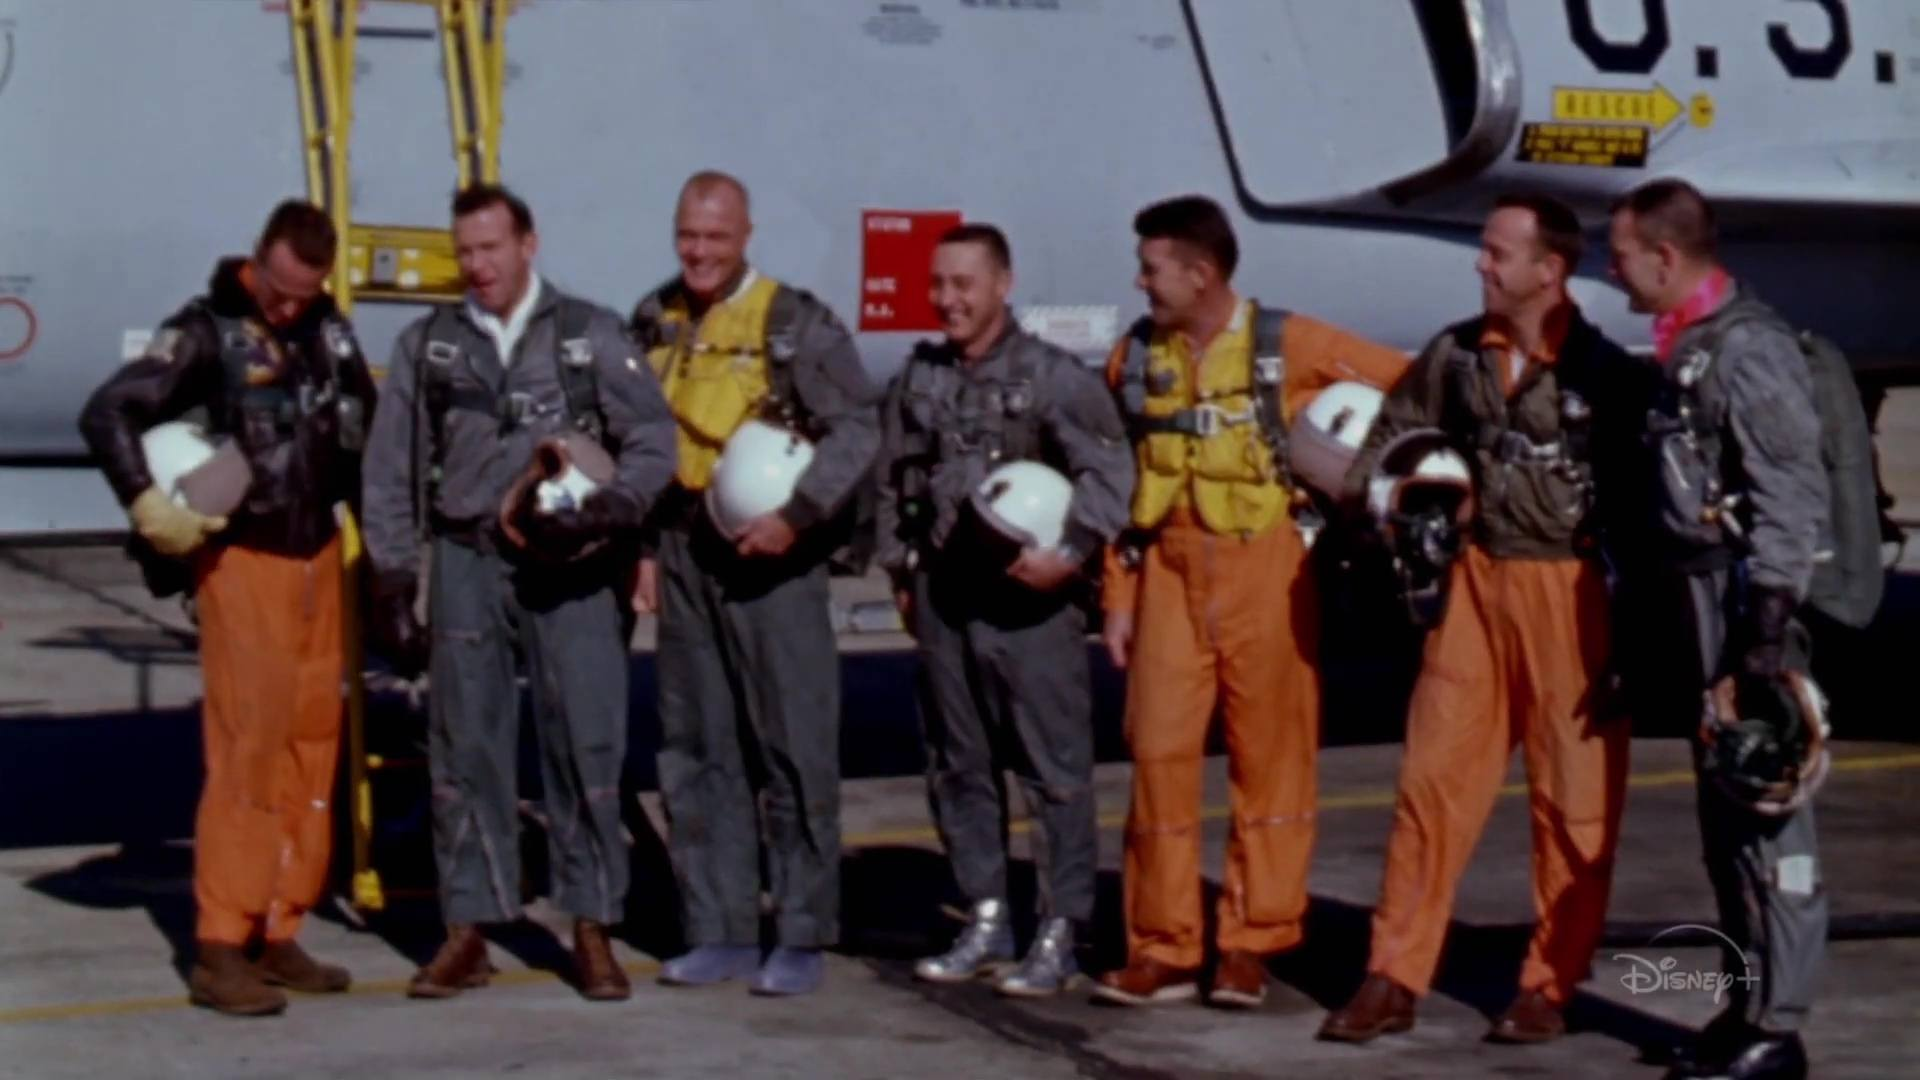 image derriere etoffe heros real right stuff disney